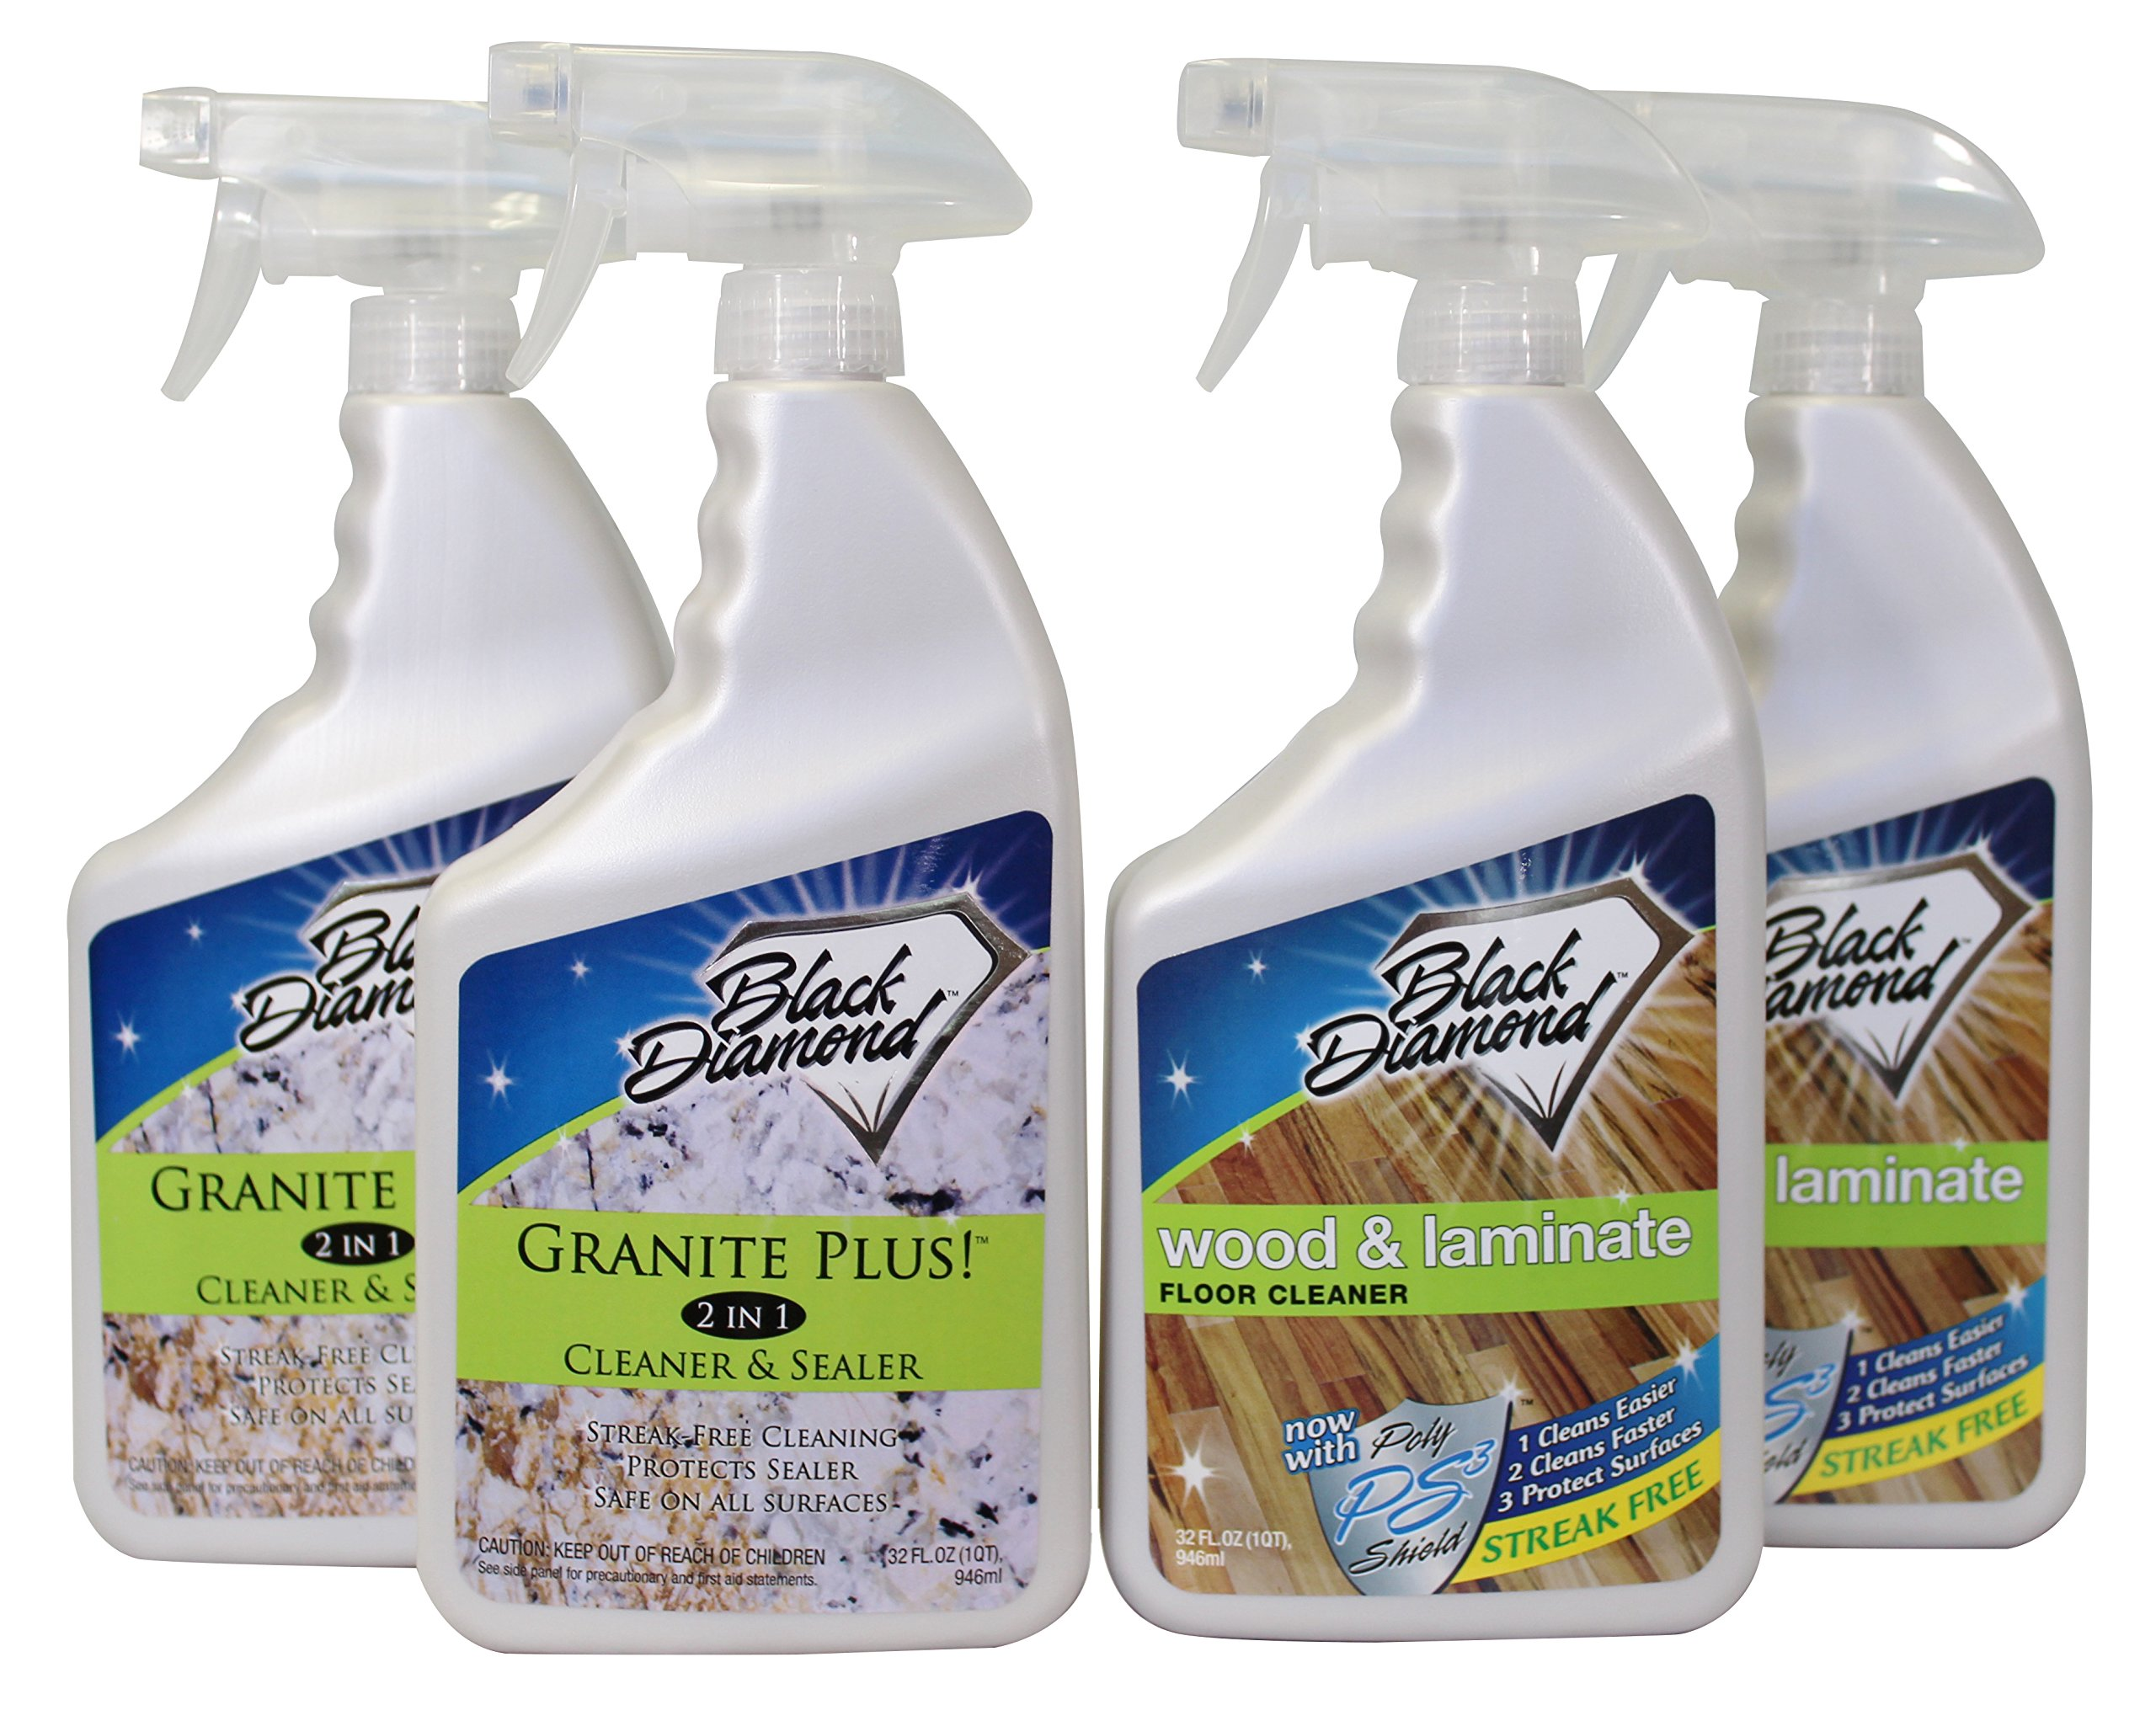 Granite Plus! 2 in 1 Cleaner & Sealer for Granite, Marble, Travertine, Limestone, Ready to Use! Black Diamond Wood & Laminate Floor Cleaner: For Hardwood, Real, Natural & Engineered(1, 4-Quarts)